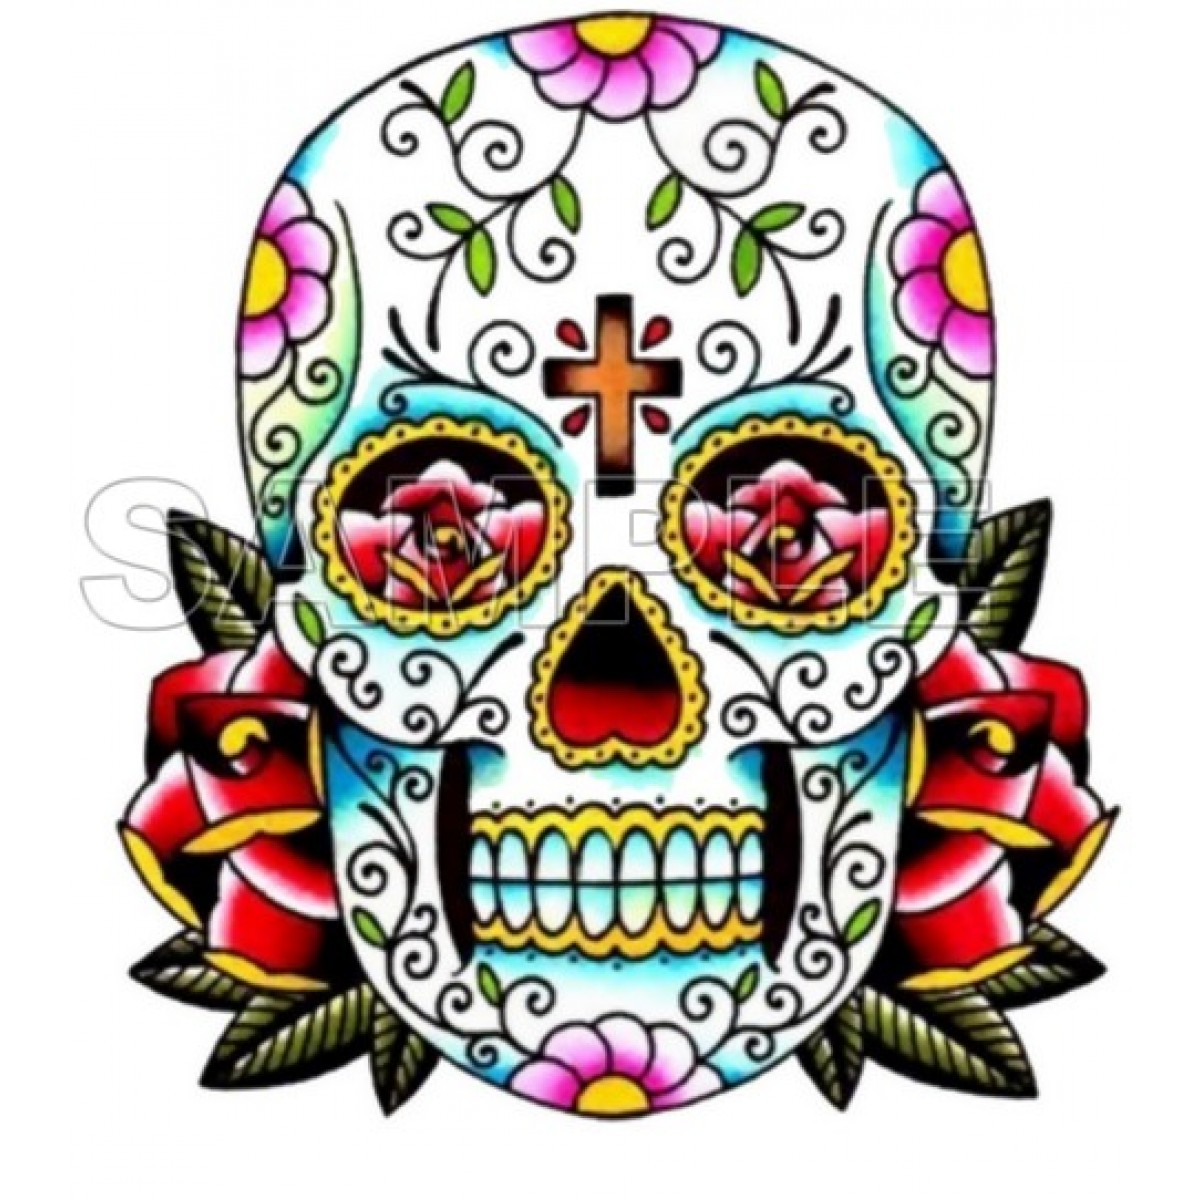 1200x1200 Personalized Iron On Transfers! Day Of The Dead De Muertos